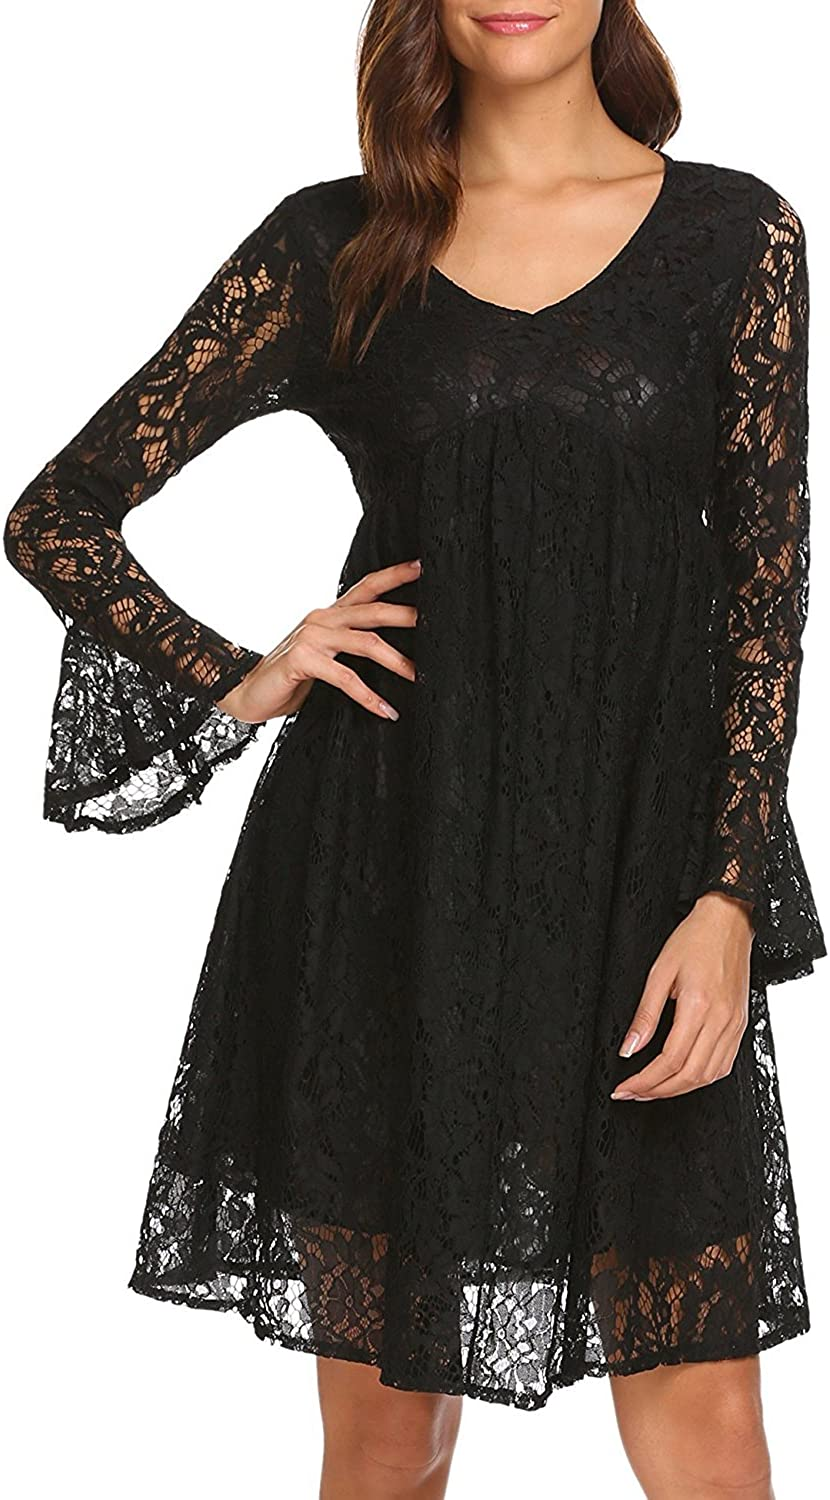 FashionRun Women's VNeck Flare Sleeve Floral Lace Empire Waist Party Pleated Dress